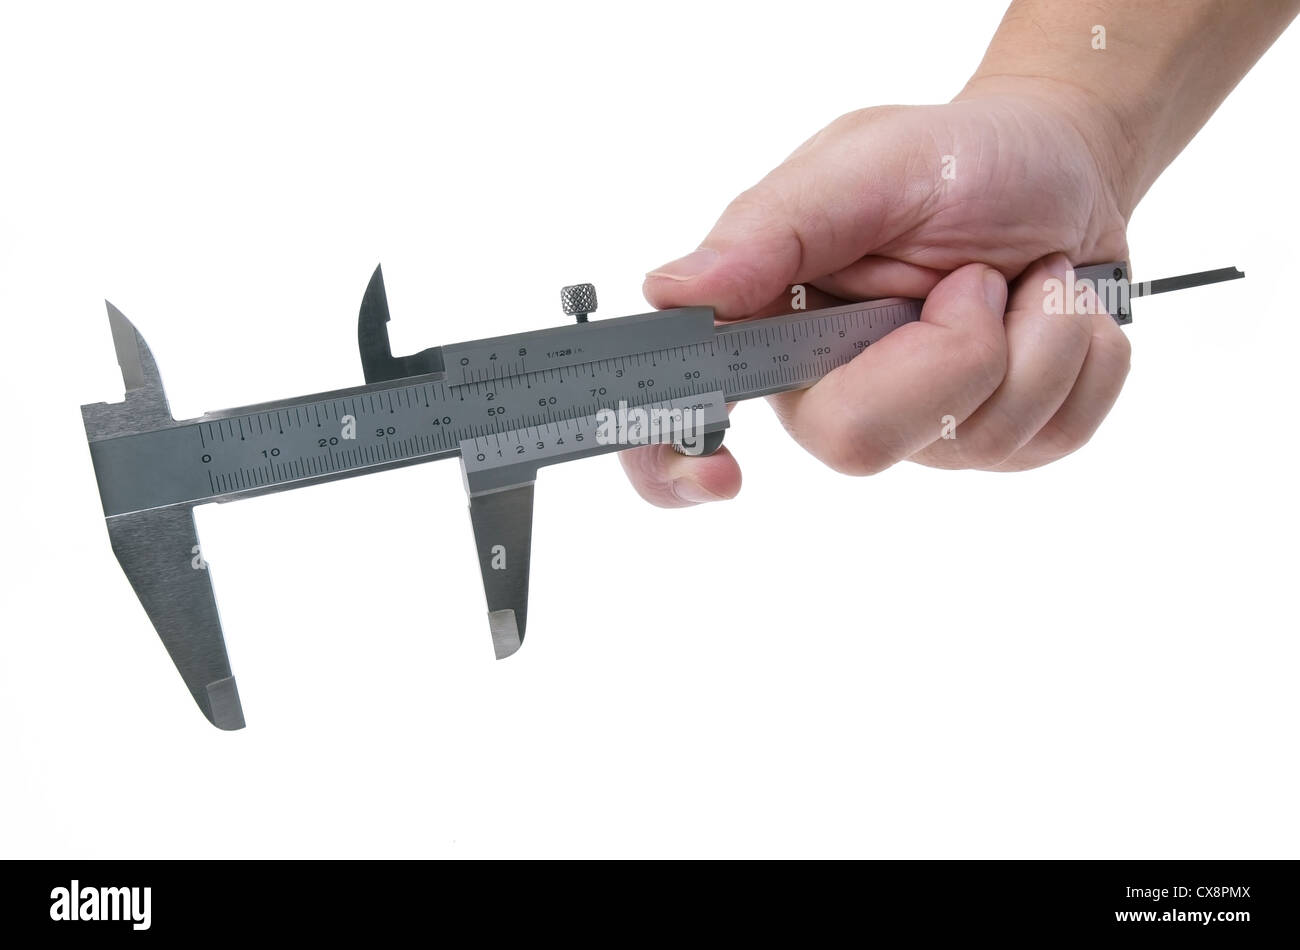 Hand using a caliper to measure on a white background - Stock Image